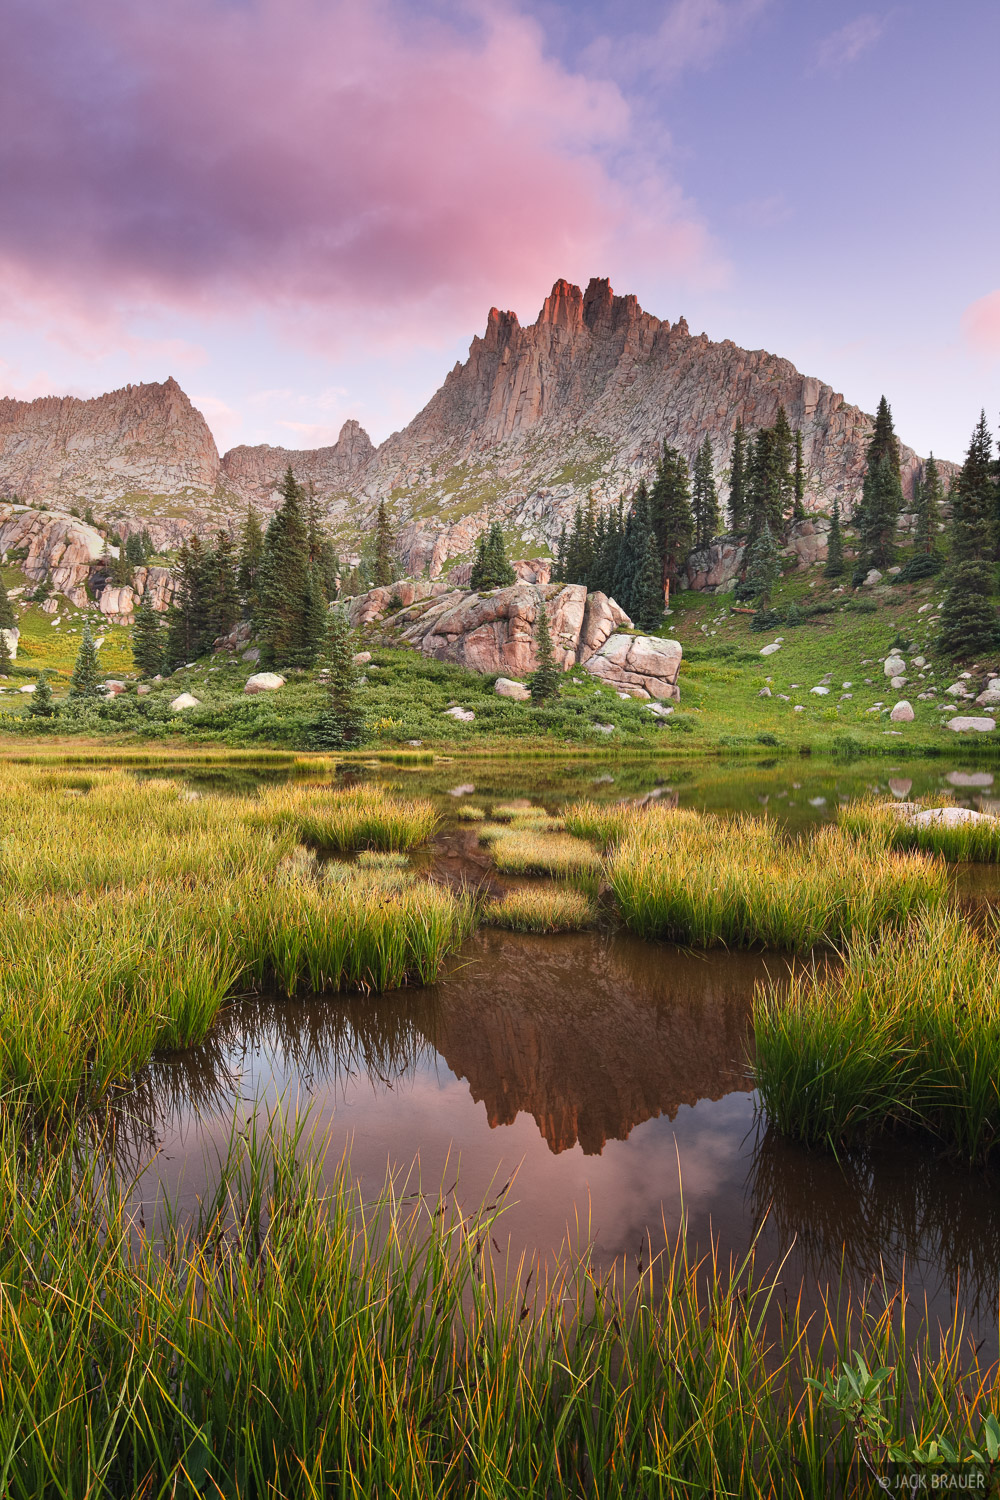 Jagged Mountain, Weminuche Wilderness, reflection, sunrise, San Juan Mountains, Colorado, photo